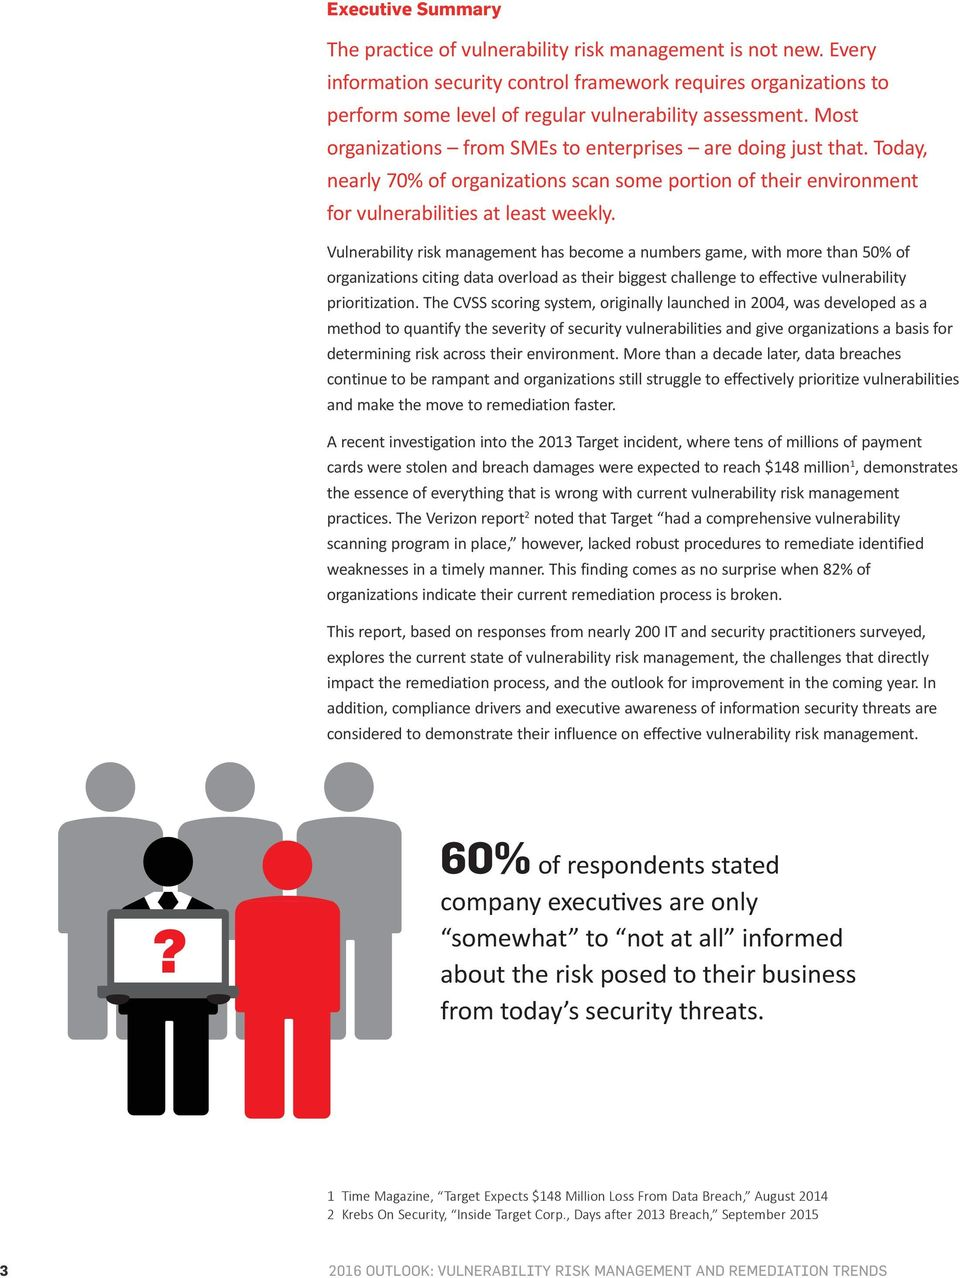 Today, nearly 70% of organizations scan some portion of their environment for vulnerabilities at least weekly.